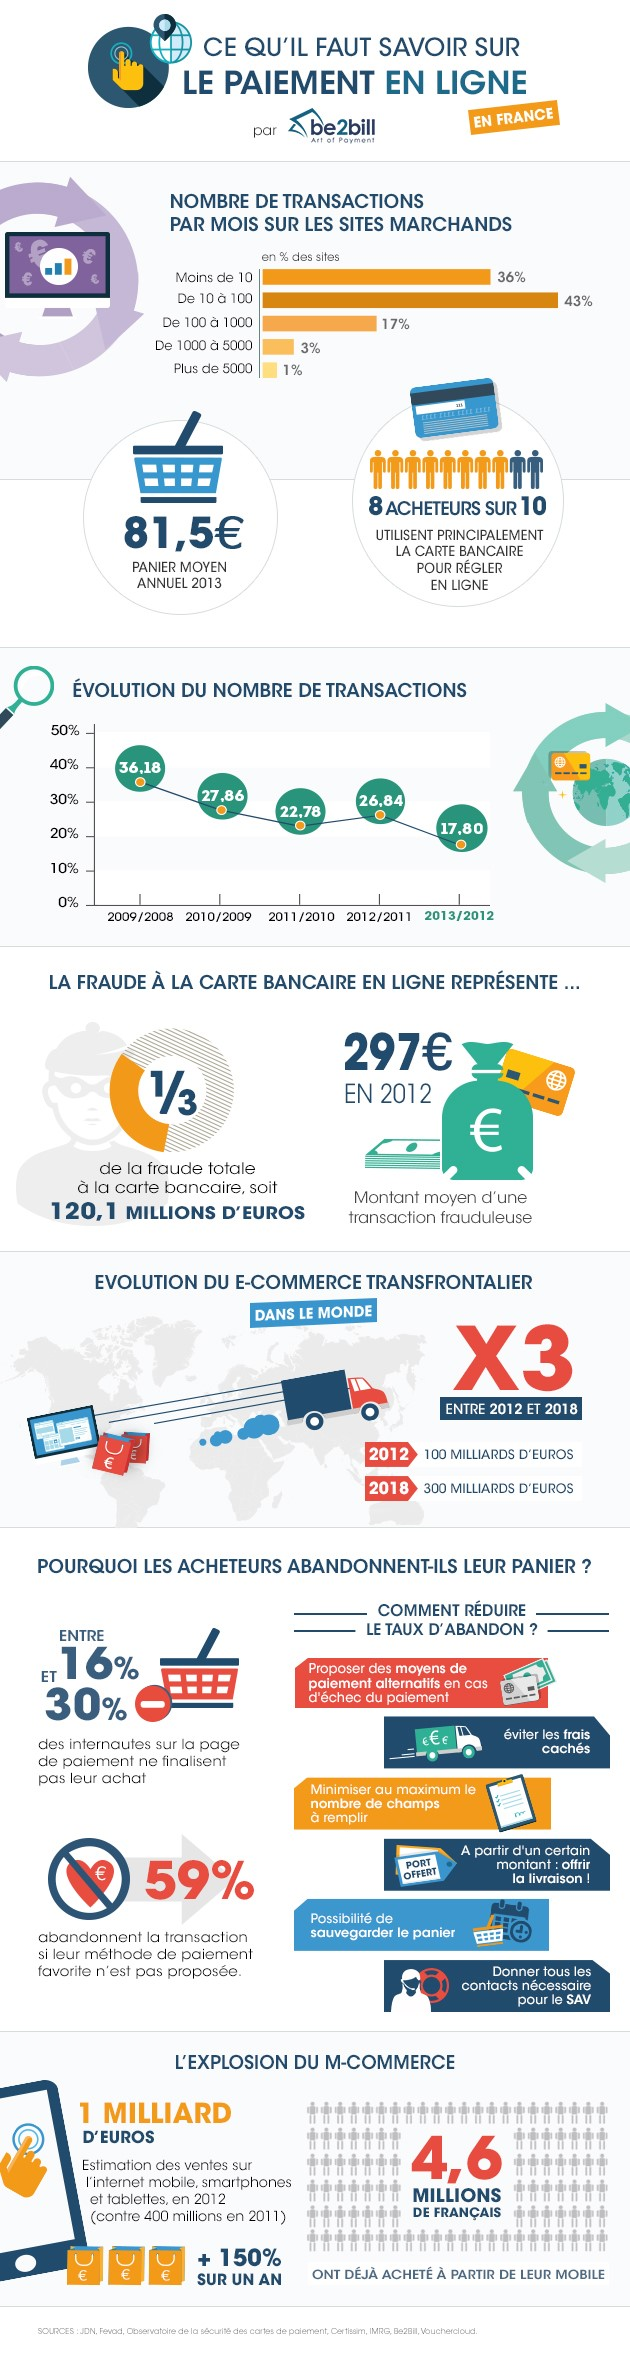 infographie tous les chiffres du paiement en ligne en france comarketing news. Black Bedroom Furniture Sets. Home Design Ideas